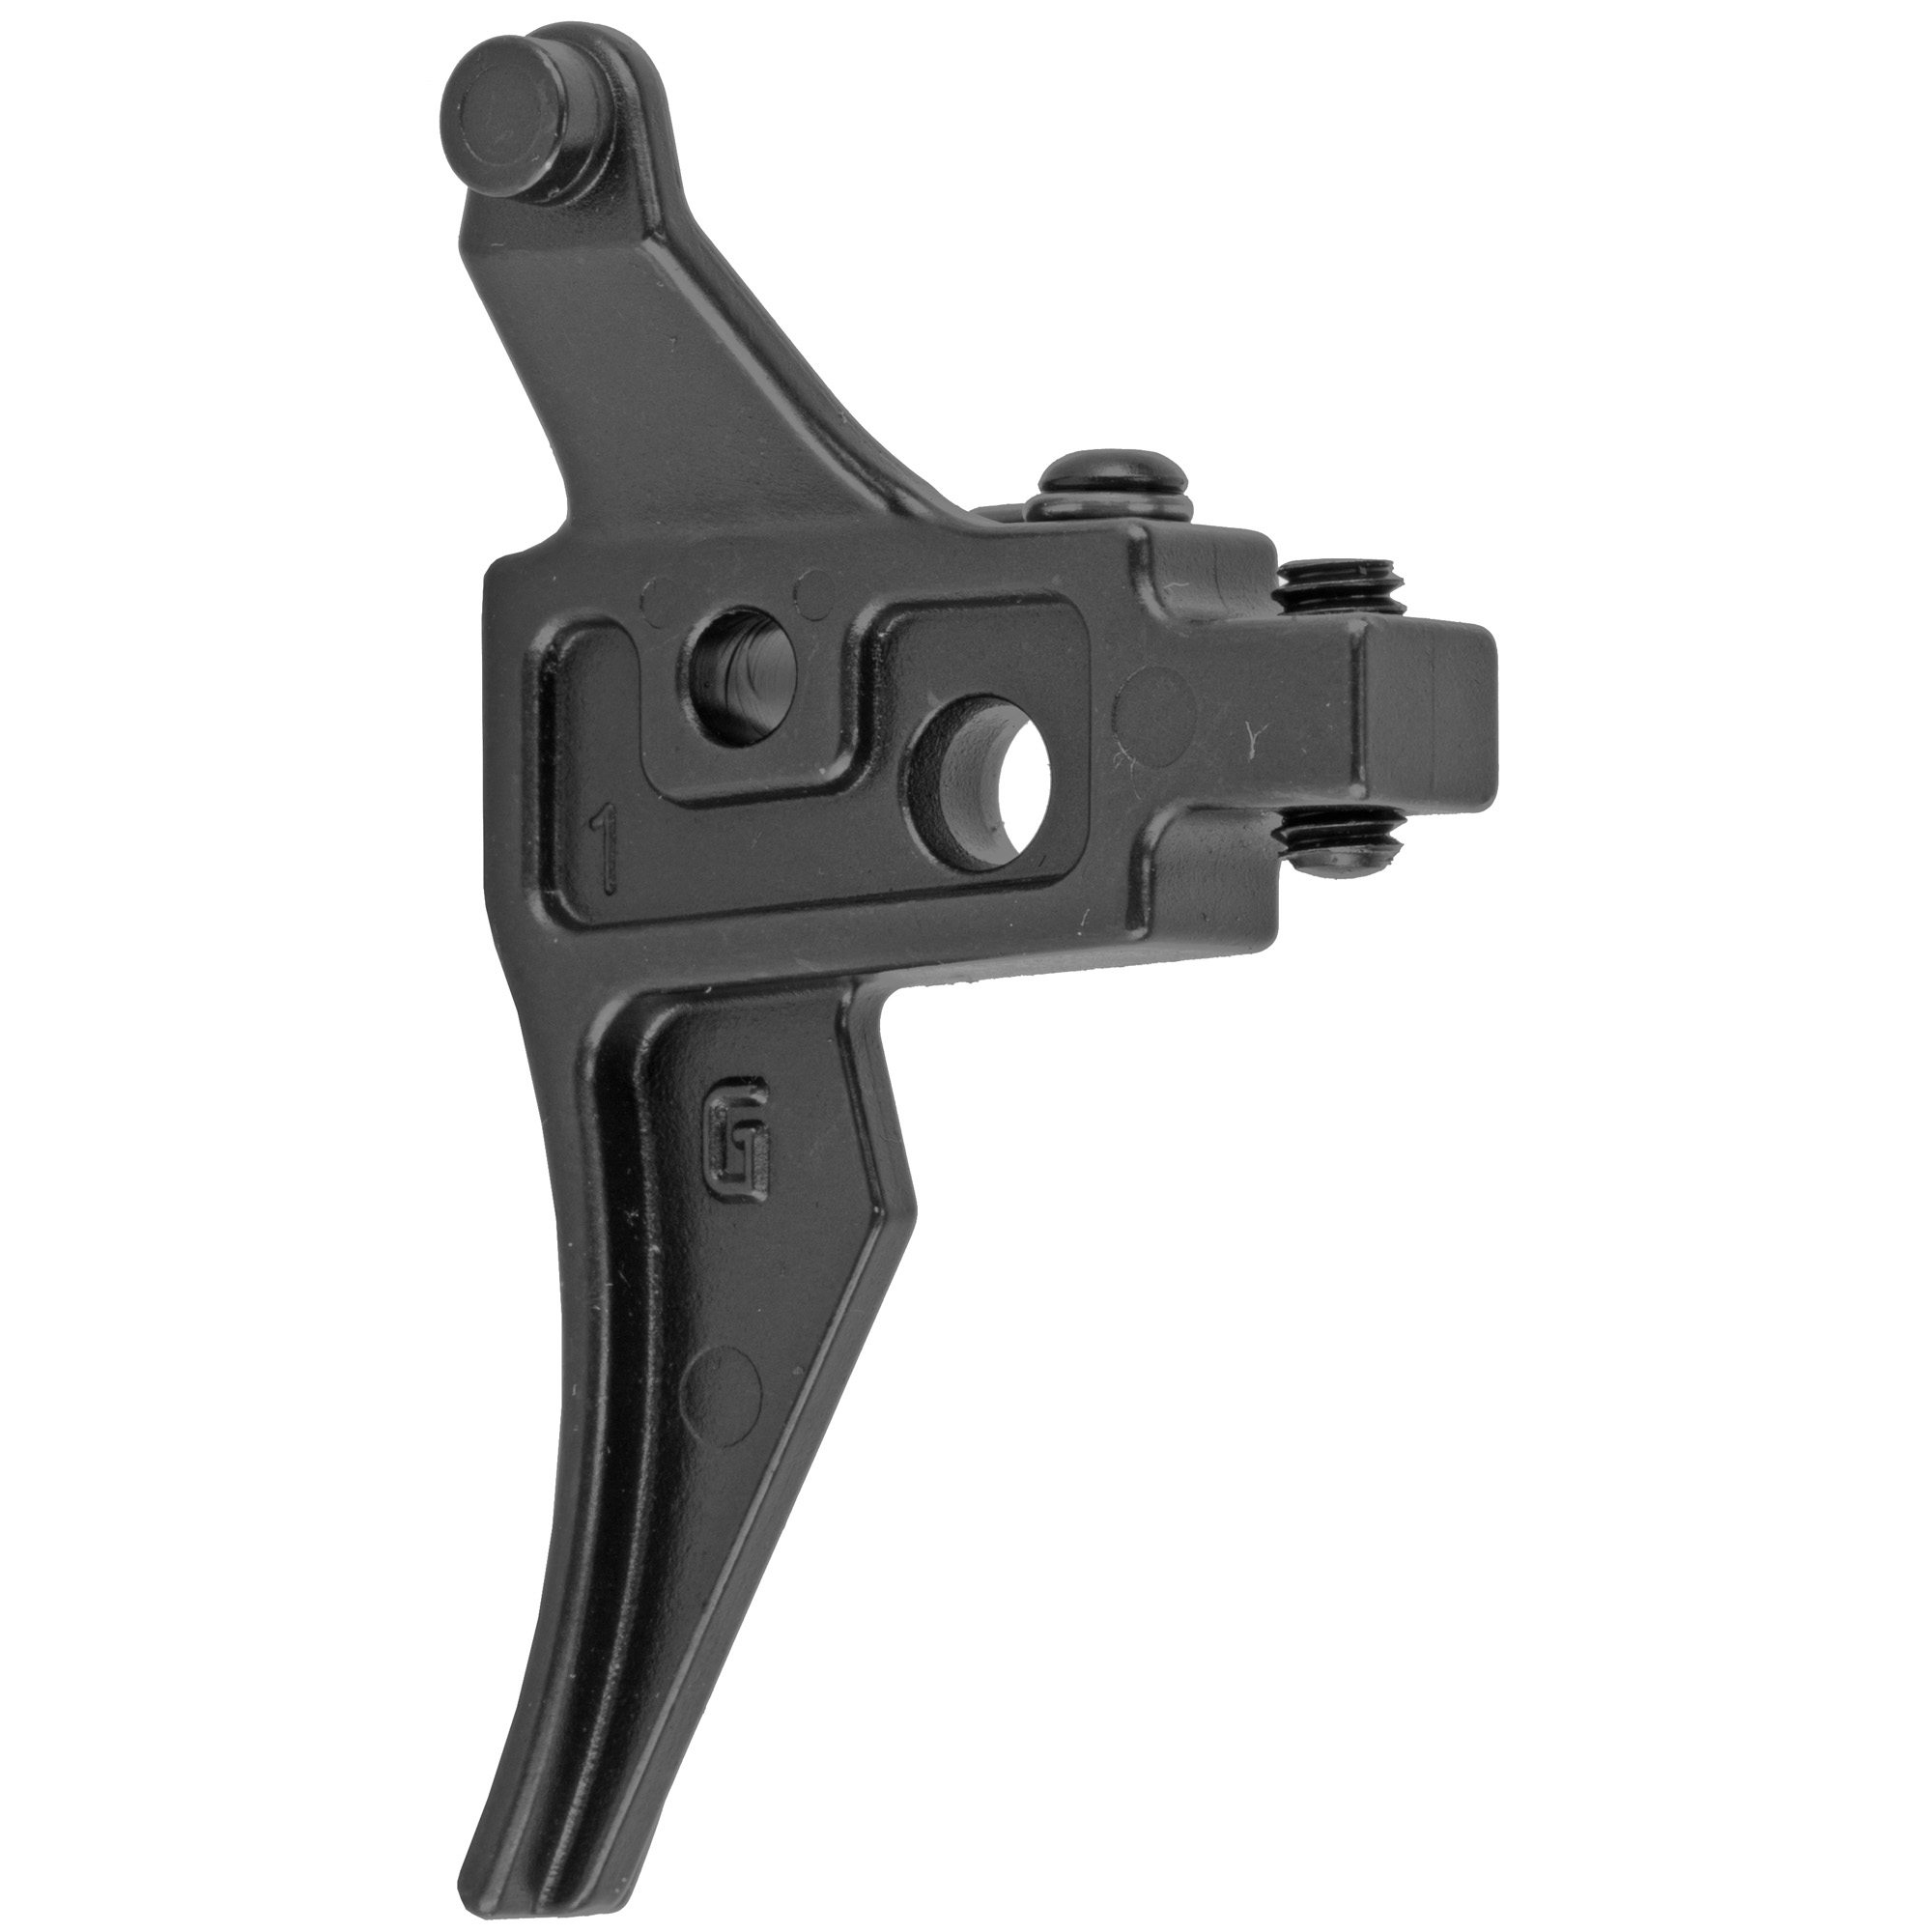 """The Super Sabra Lightning Bow Trigger is designed to replace the standard trigger in IWI Tavor rifles. Once installed"""" the Sabra Lightning Bow is adjustable via a set screw that removes the """"slack"""" that is inherently found in the trigger mechanism of those rifles. By removing the slack"""" the trigger pull is instantly transformed into a feel that is much more familiar to that of an M4 Carbine. Pairing the Sabra Lightning Bow with a Super Sabra Trigger Pack will result in a pull that is truly two stage and has a match grade feel."""